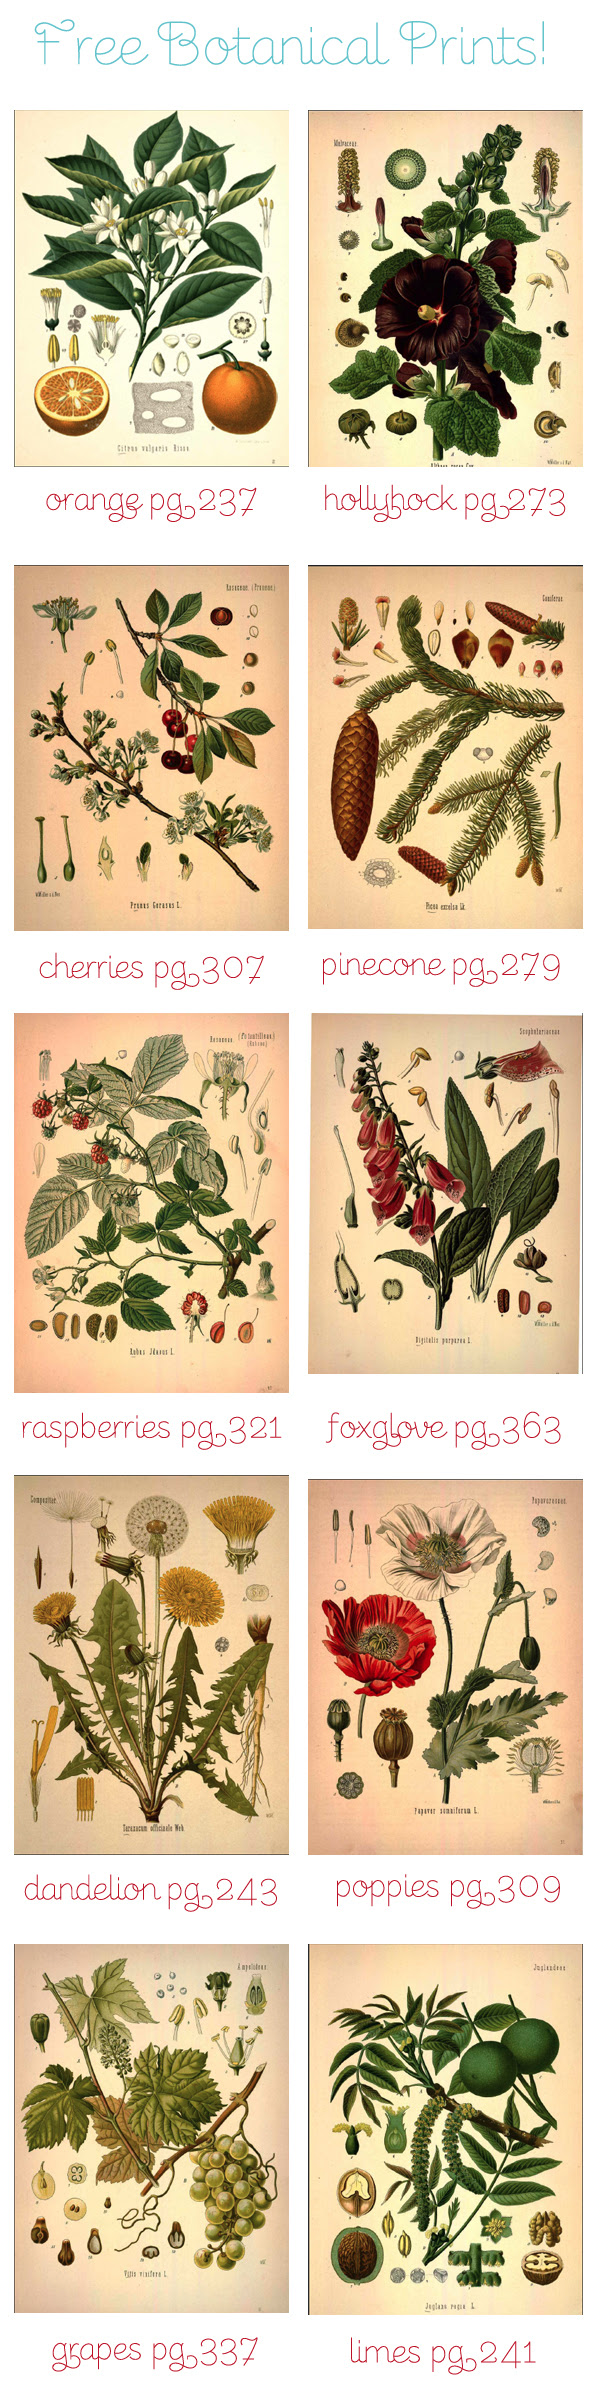 free-botanical-art